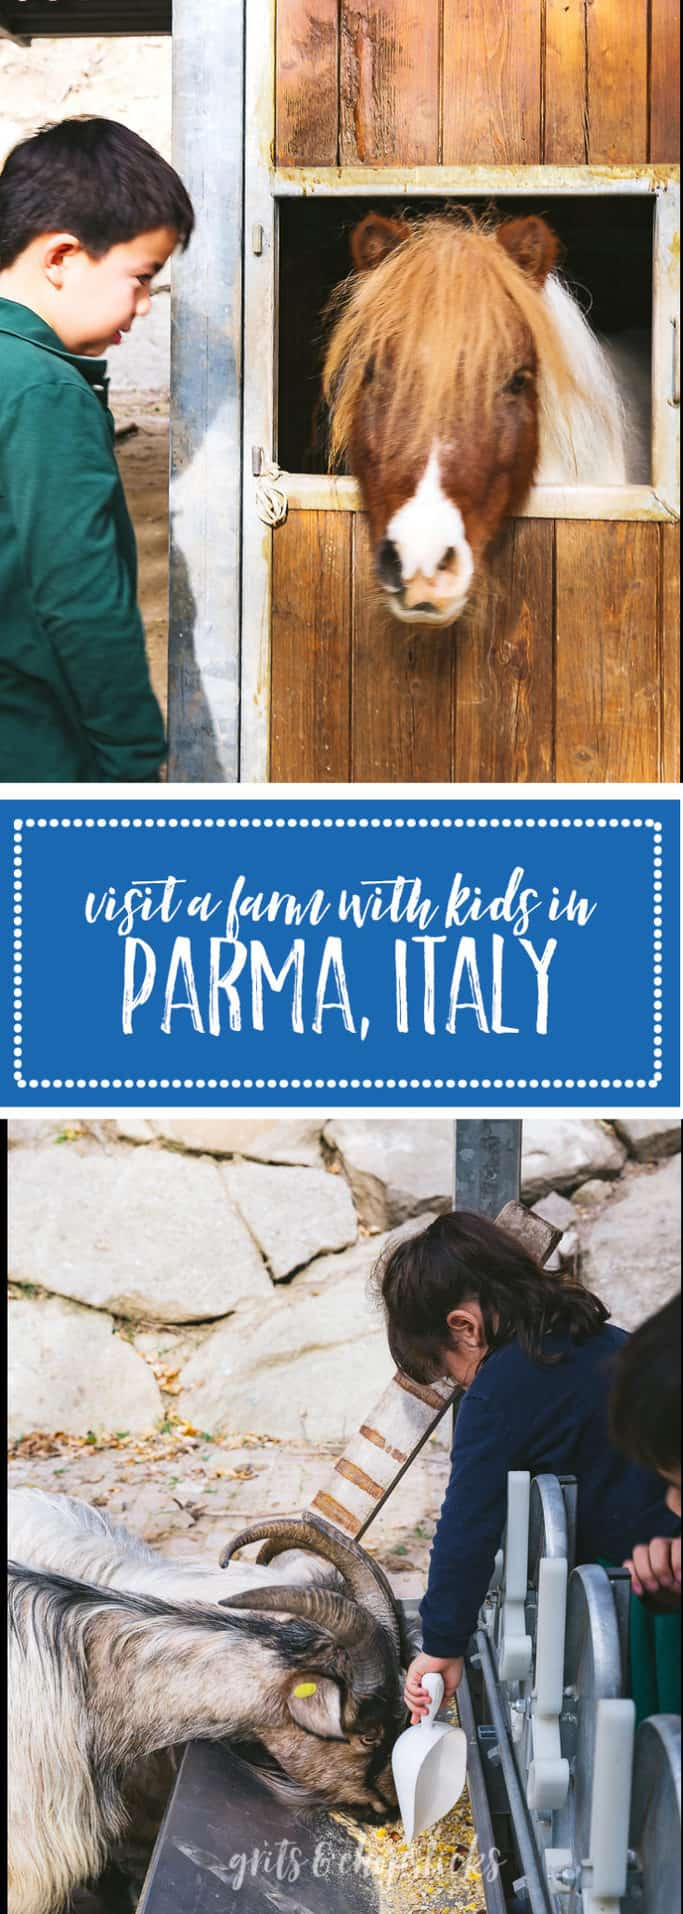 Learn more about visiting an agriturismo (farmhouse) in Parma Italy - it's a great destination for families with young kids!